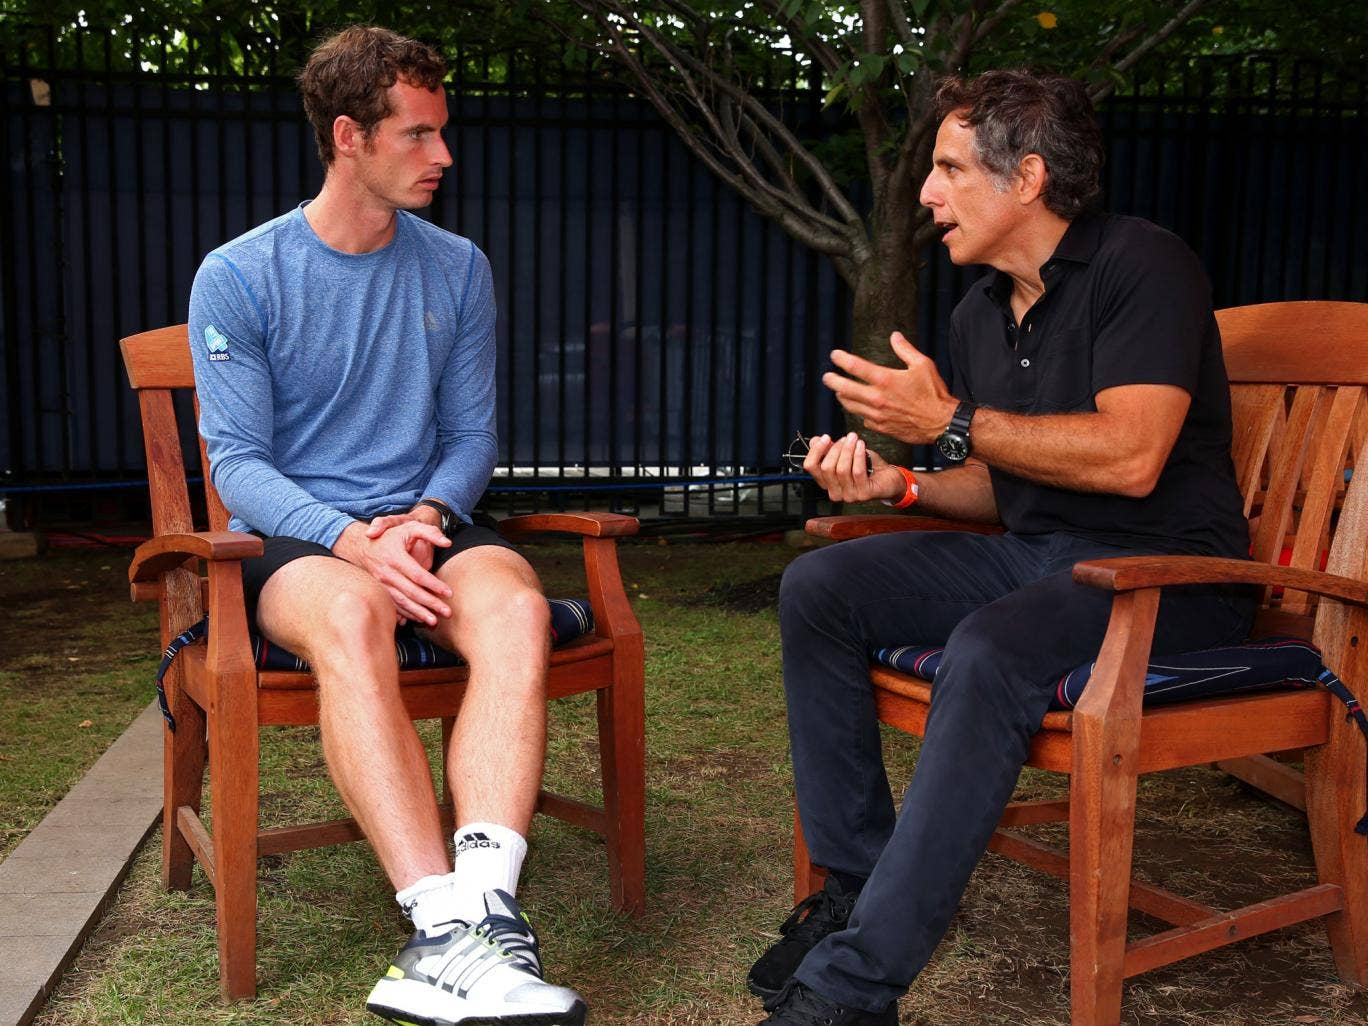 The actor Ben Stiller guest-stars on Andy Murray's coaching team